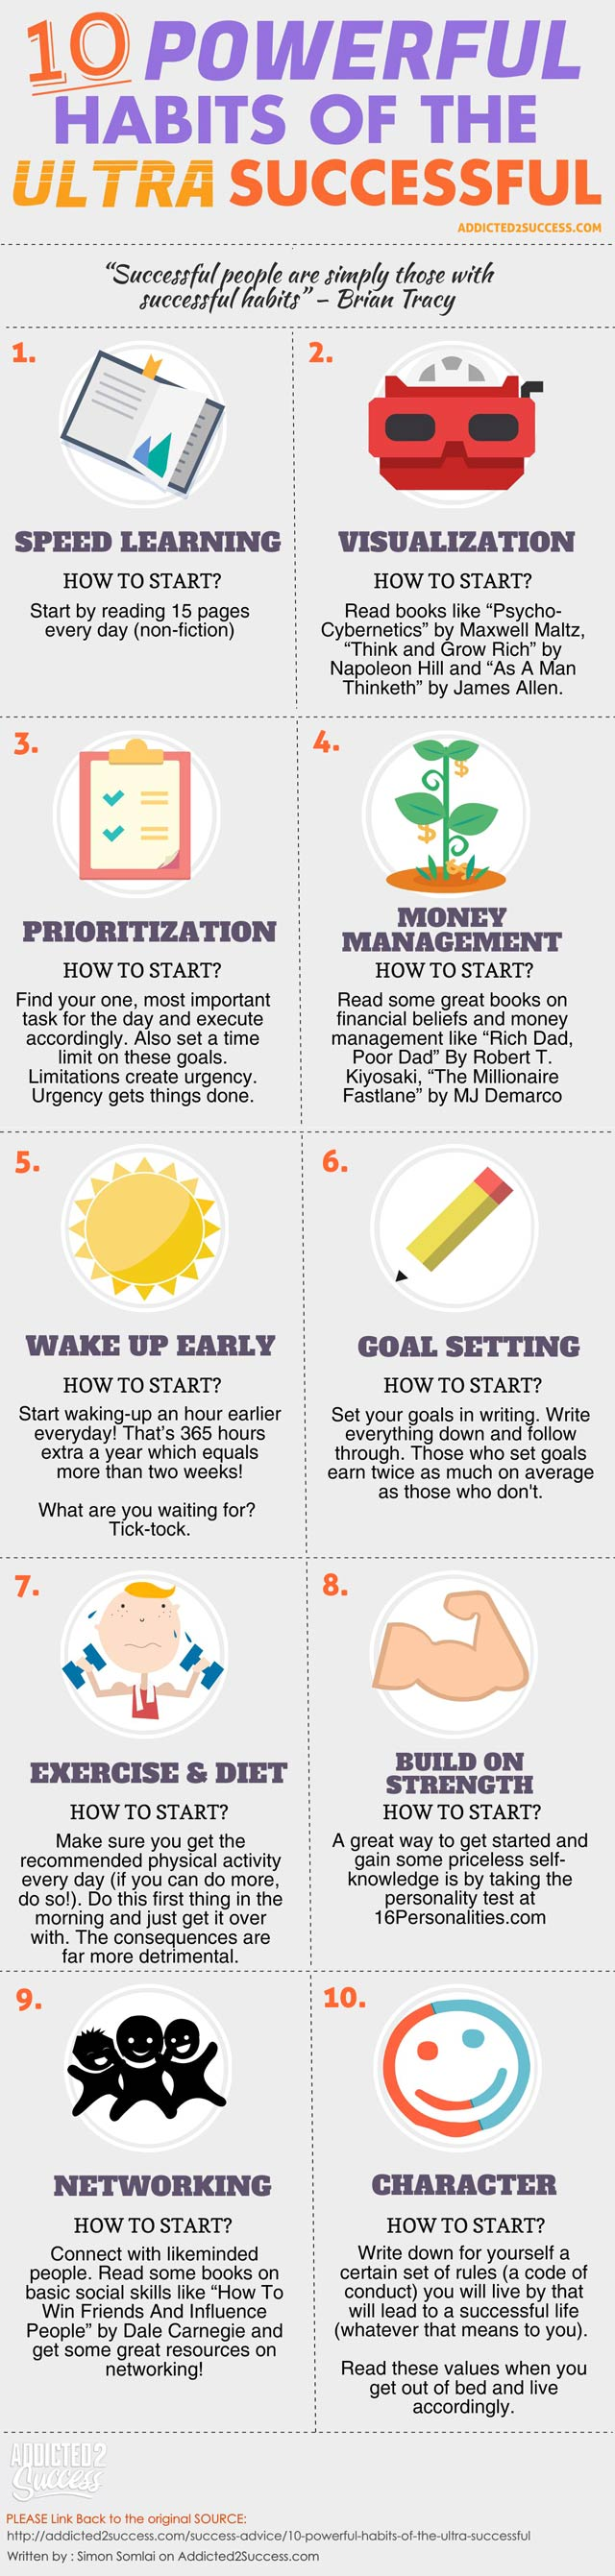 10 Powerful Habits Of The Super Successful #infographic